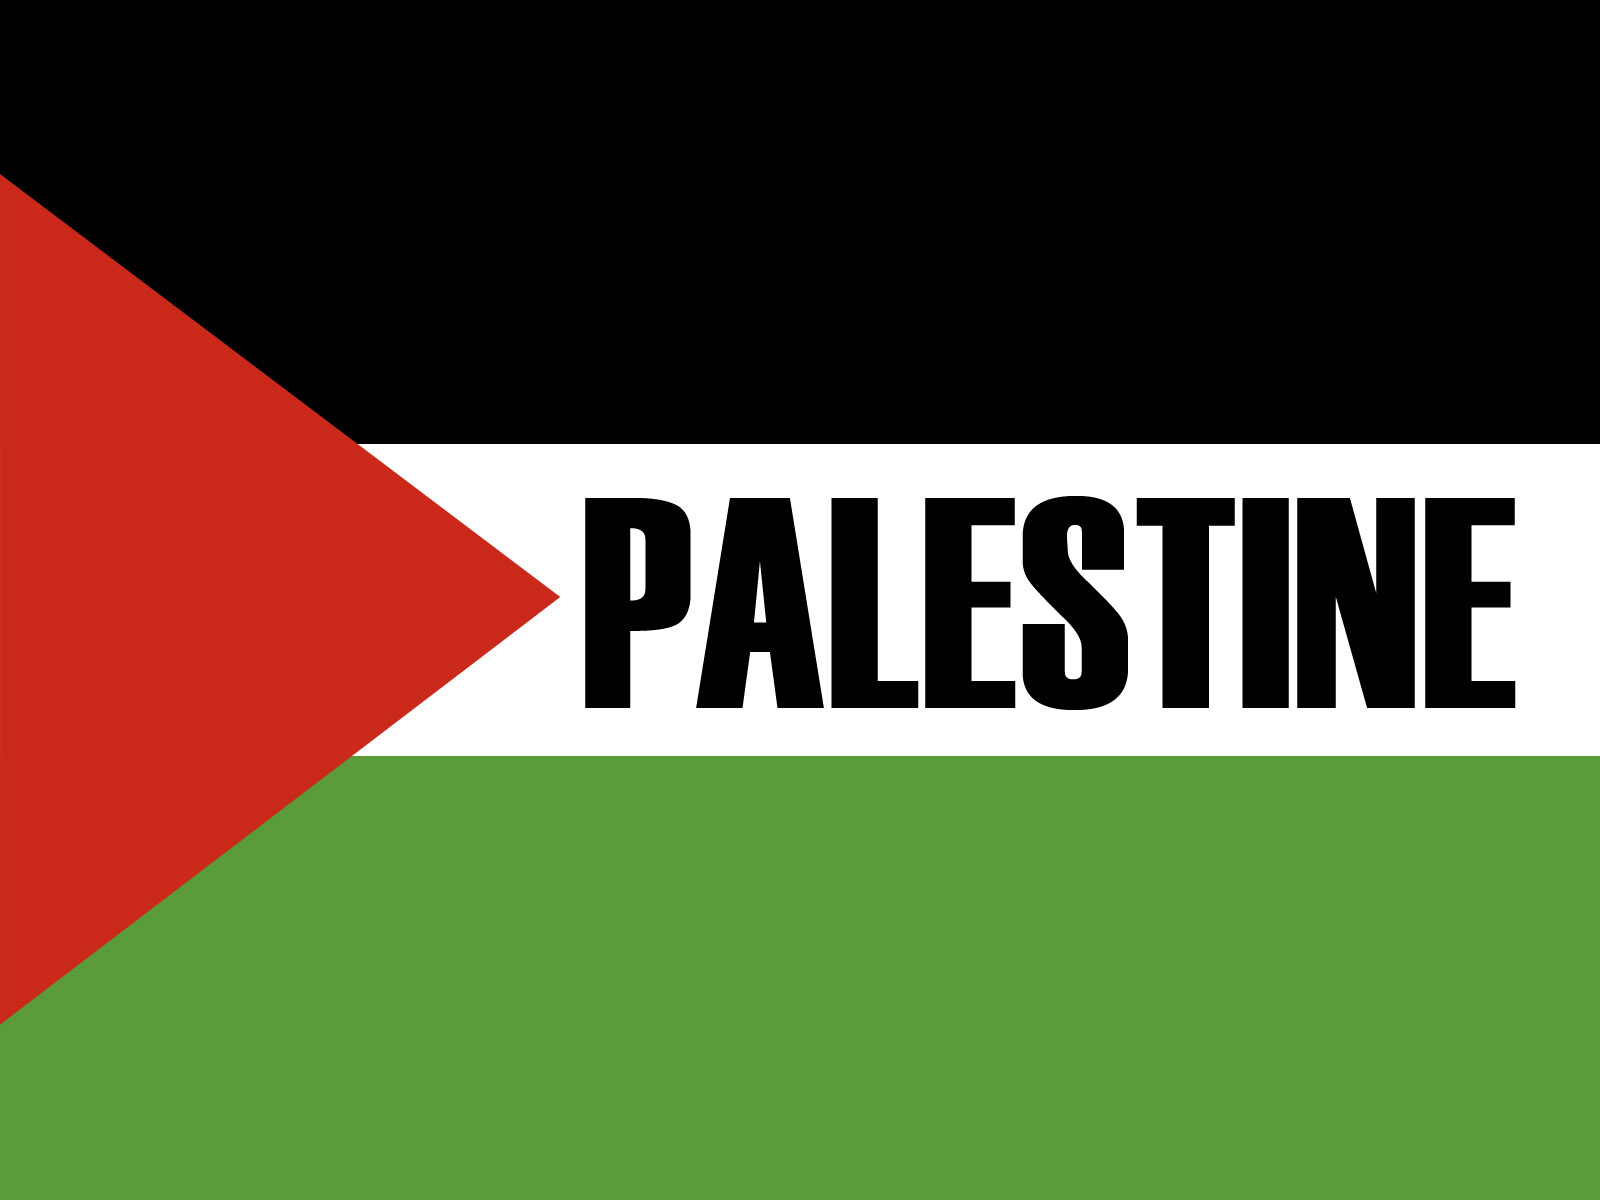 The Palestinian